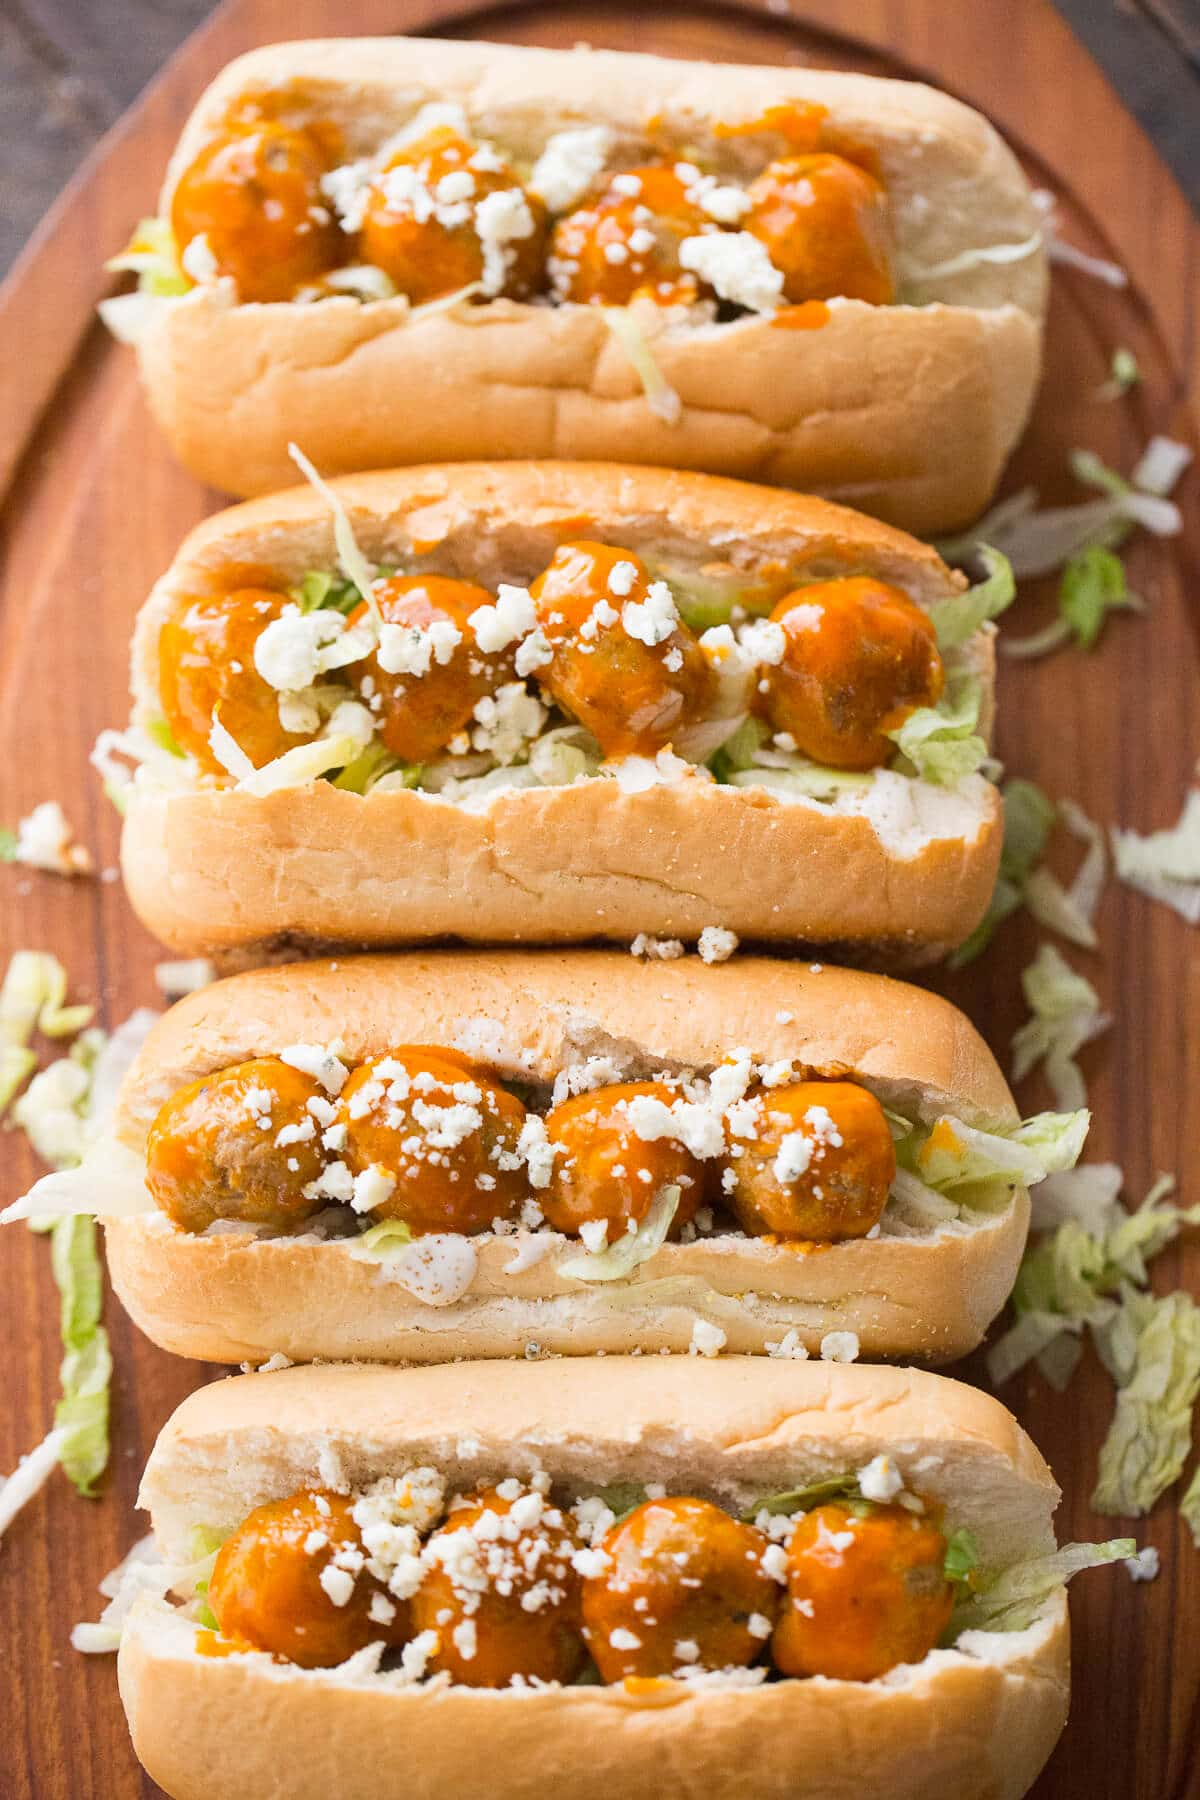 Buffalo Ranch flavored meatballs steal the show in this easy meatball sub recipe!